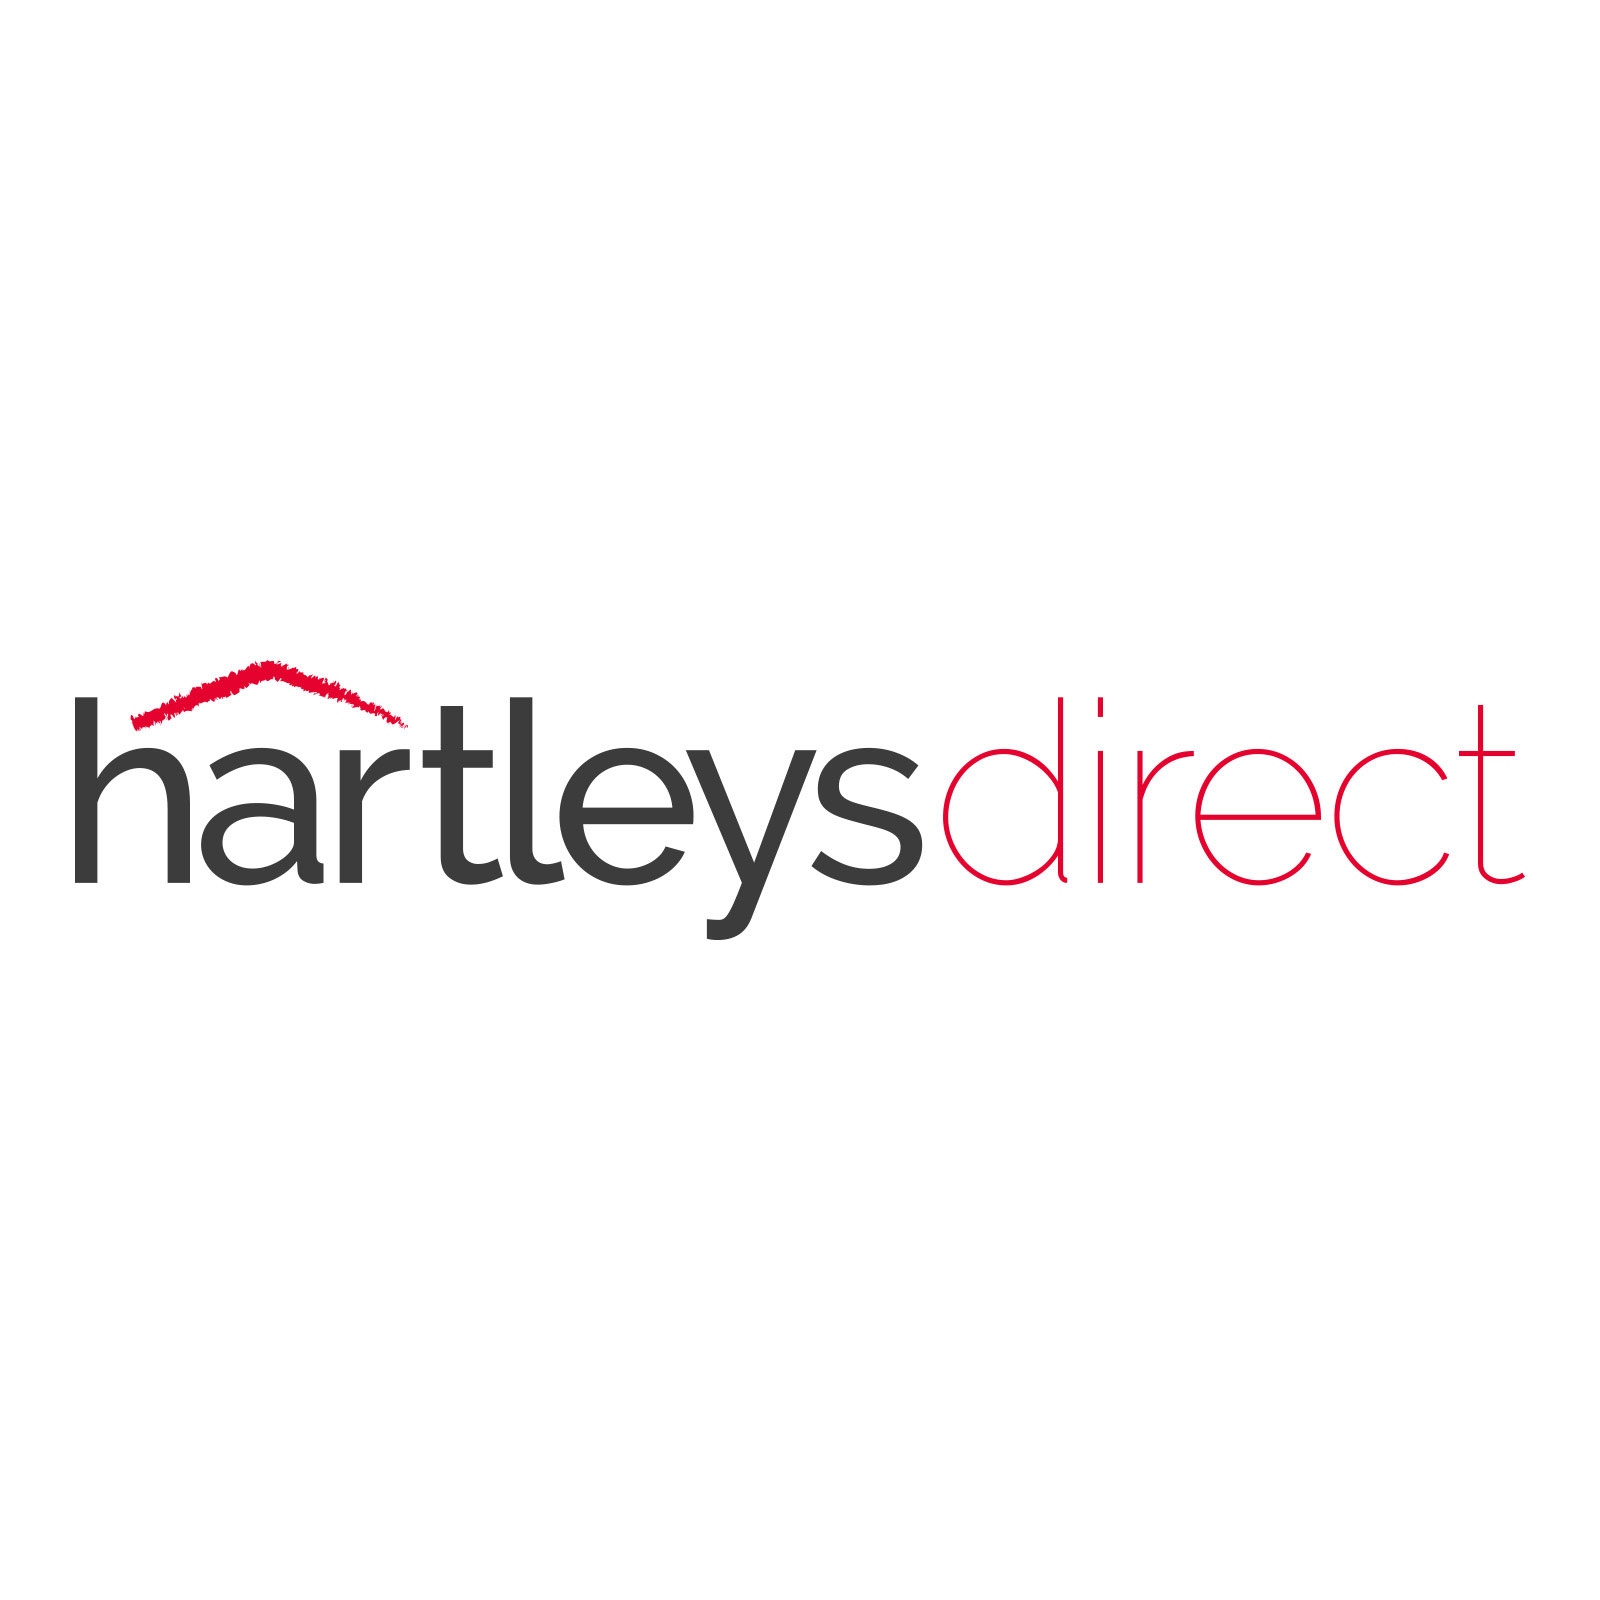 Hartleys-Kids-White-Storage-Desk-with-Yellow-Storage-Boxes-and-Colour-Swatches-on-White-Background.jpg